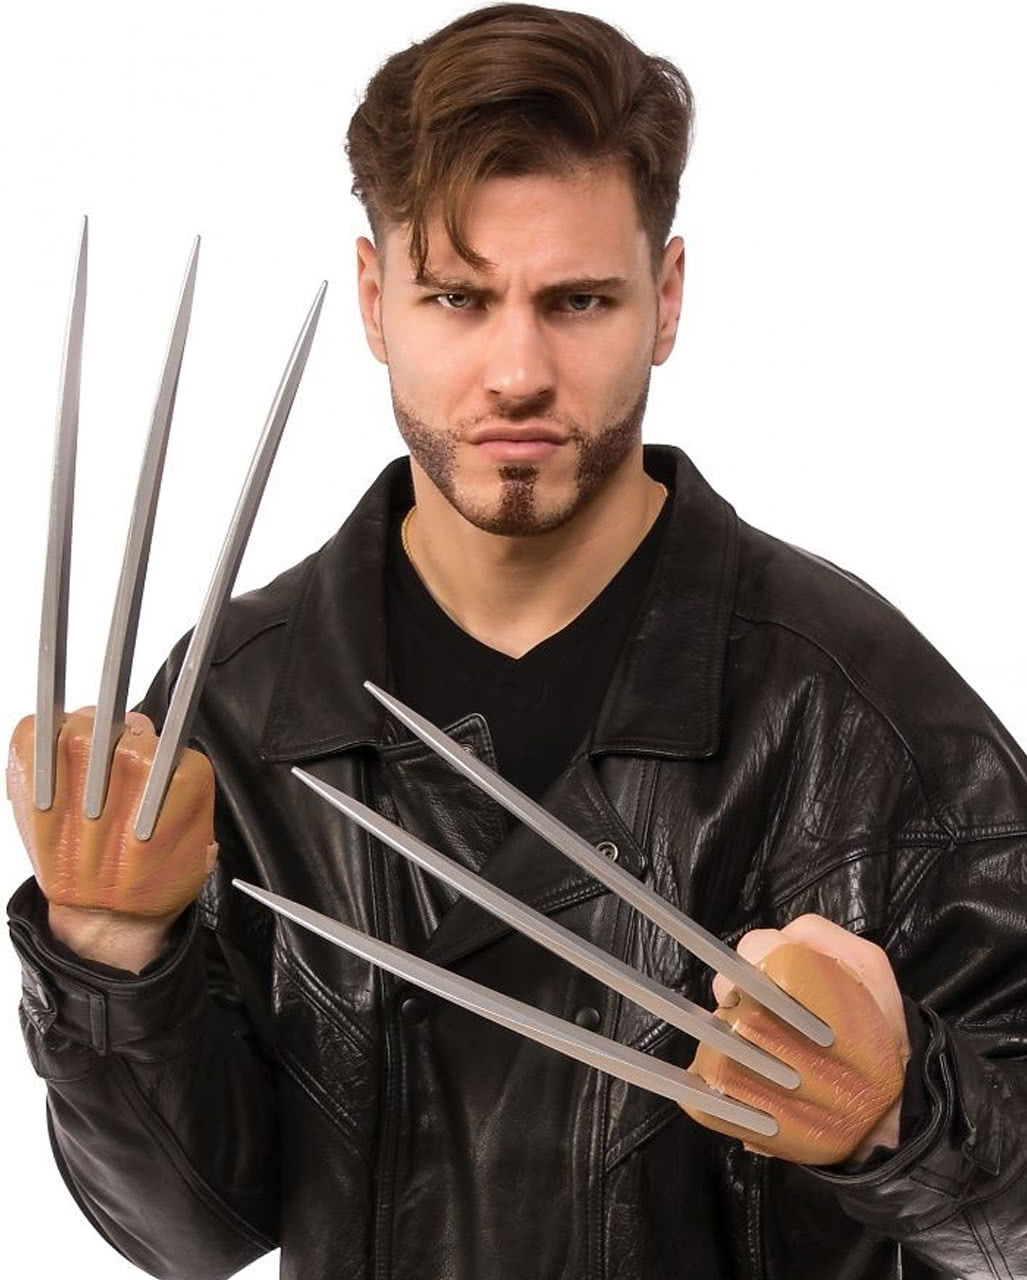 Wolverine Claws X Men Toy Weapon Karneval Universe